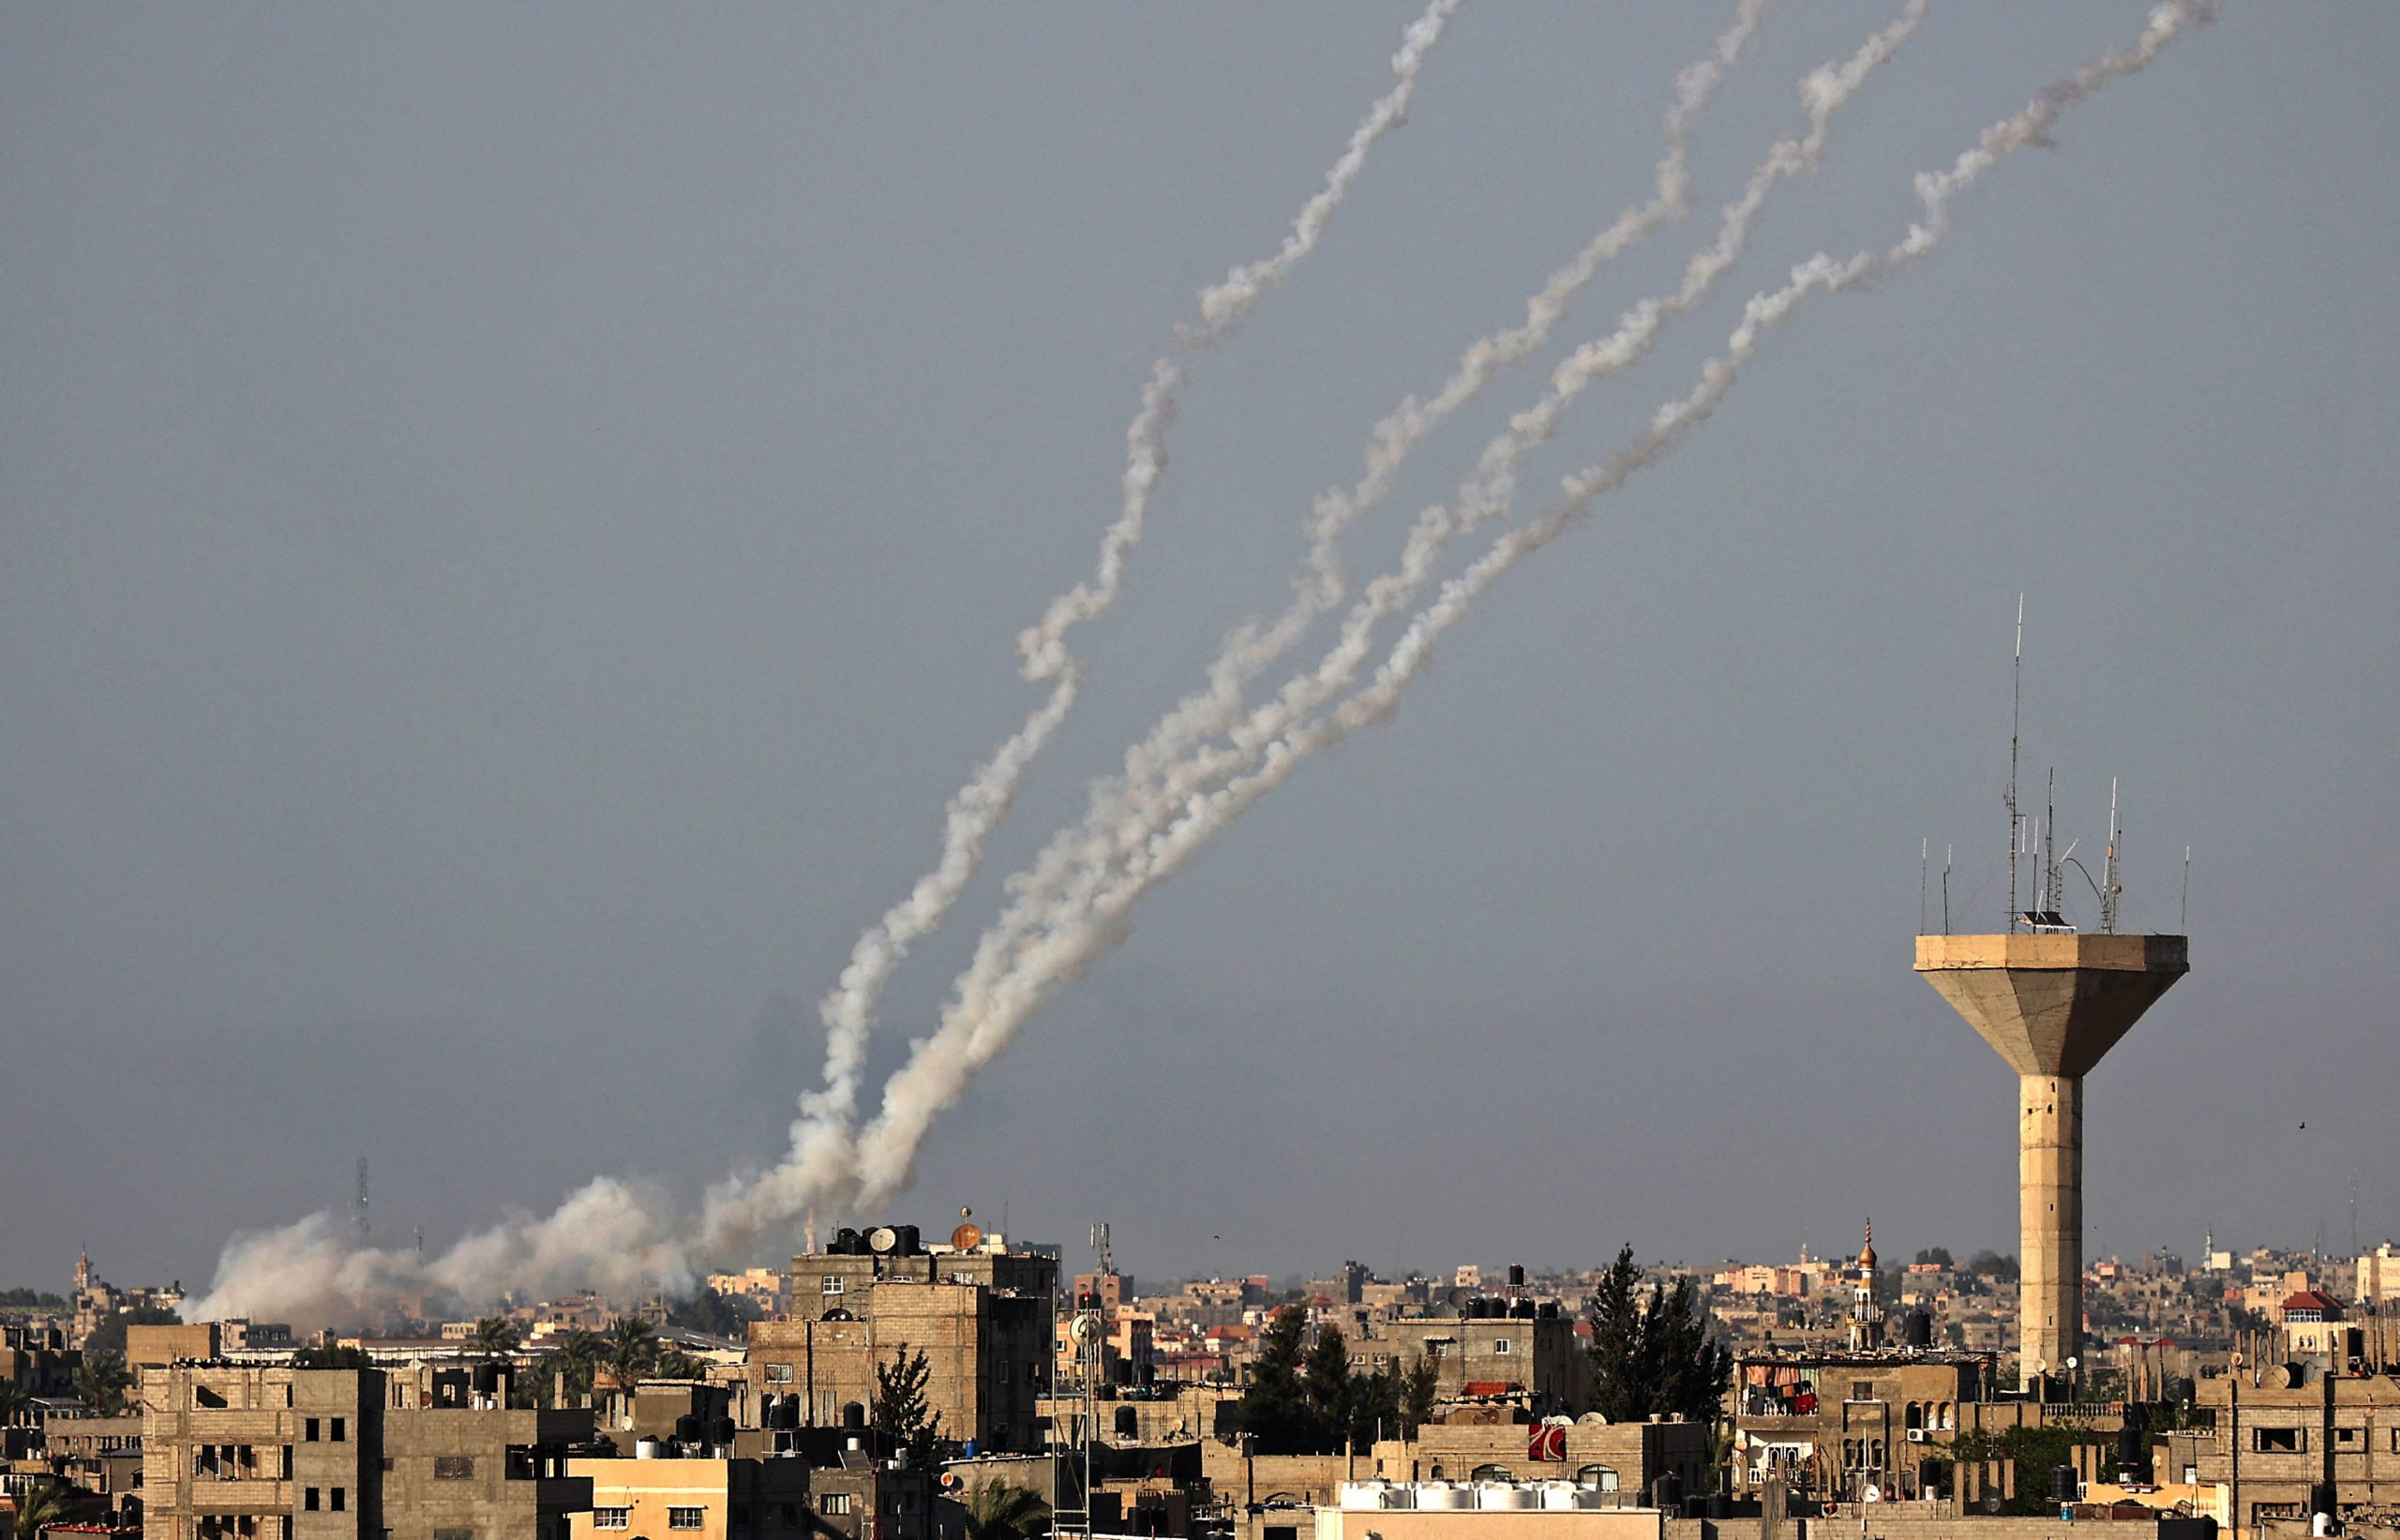 Rockets are launched towards Israel from Rafah, in the south of the Gaza Strip, controlled by the Palestinian Hamas movement, on May 11, 2021. (Photo by SAID KHATIB / AFP) (Photo by SAID KHATIB/AFP via Getty Images)